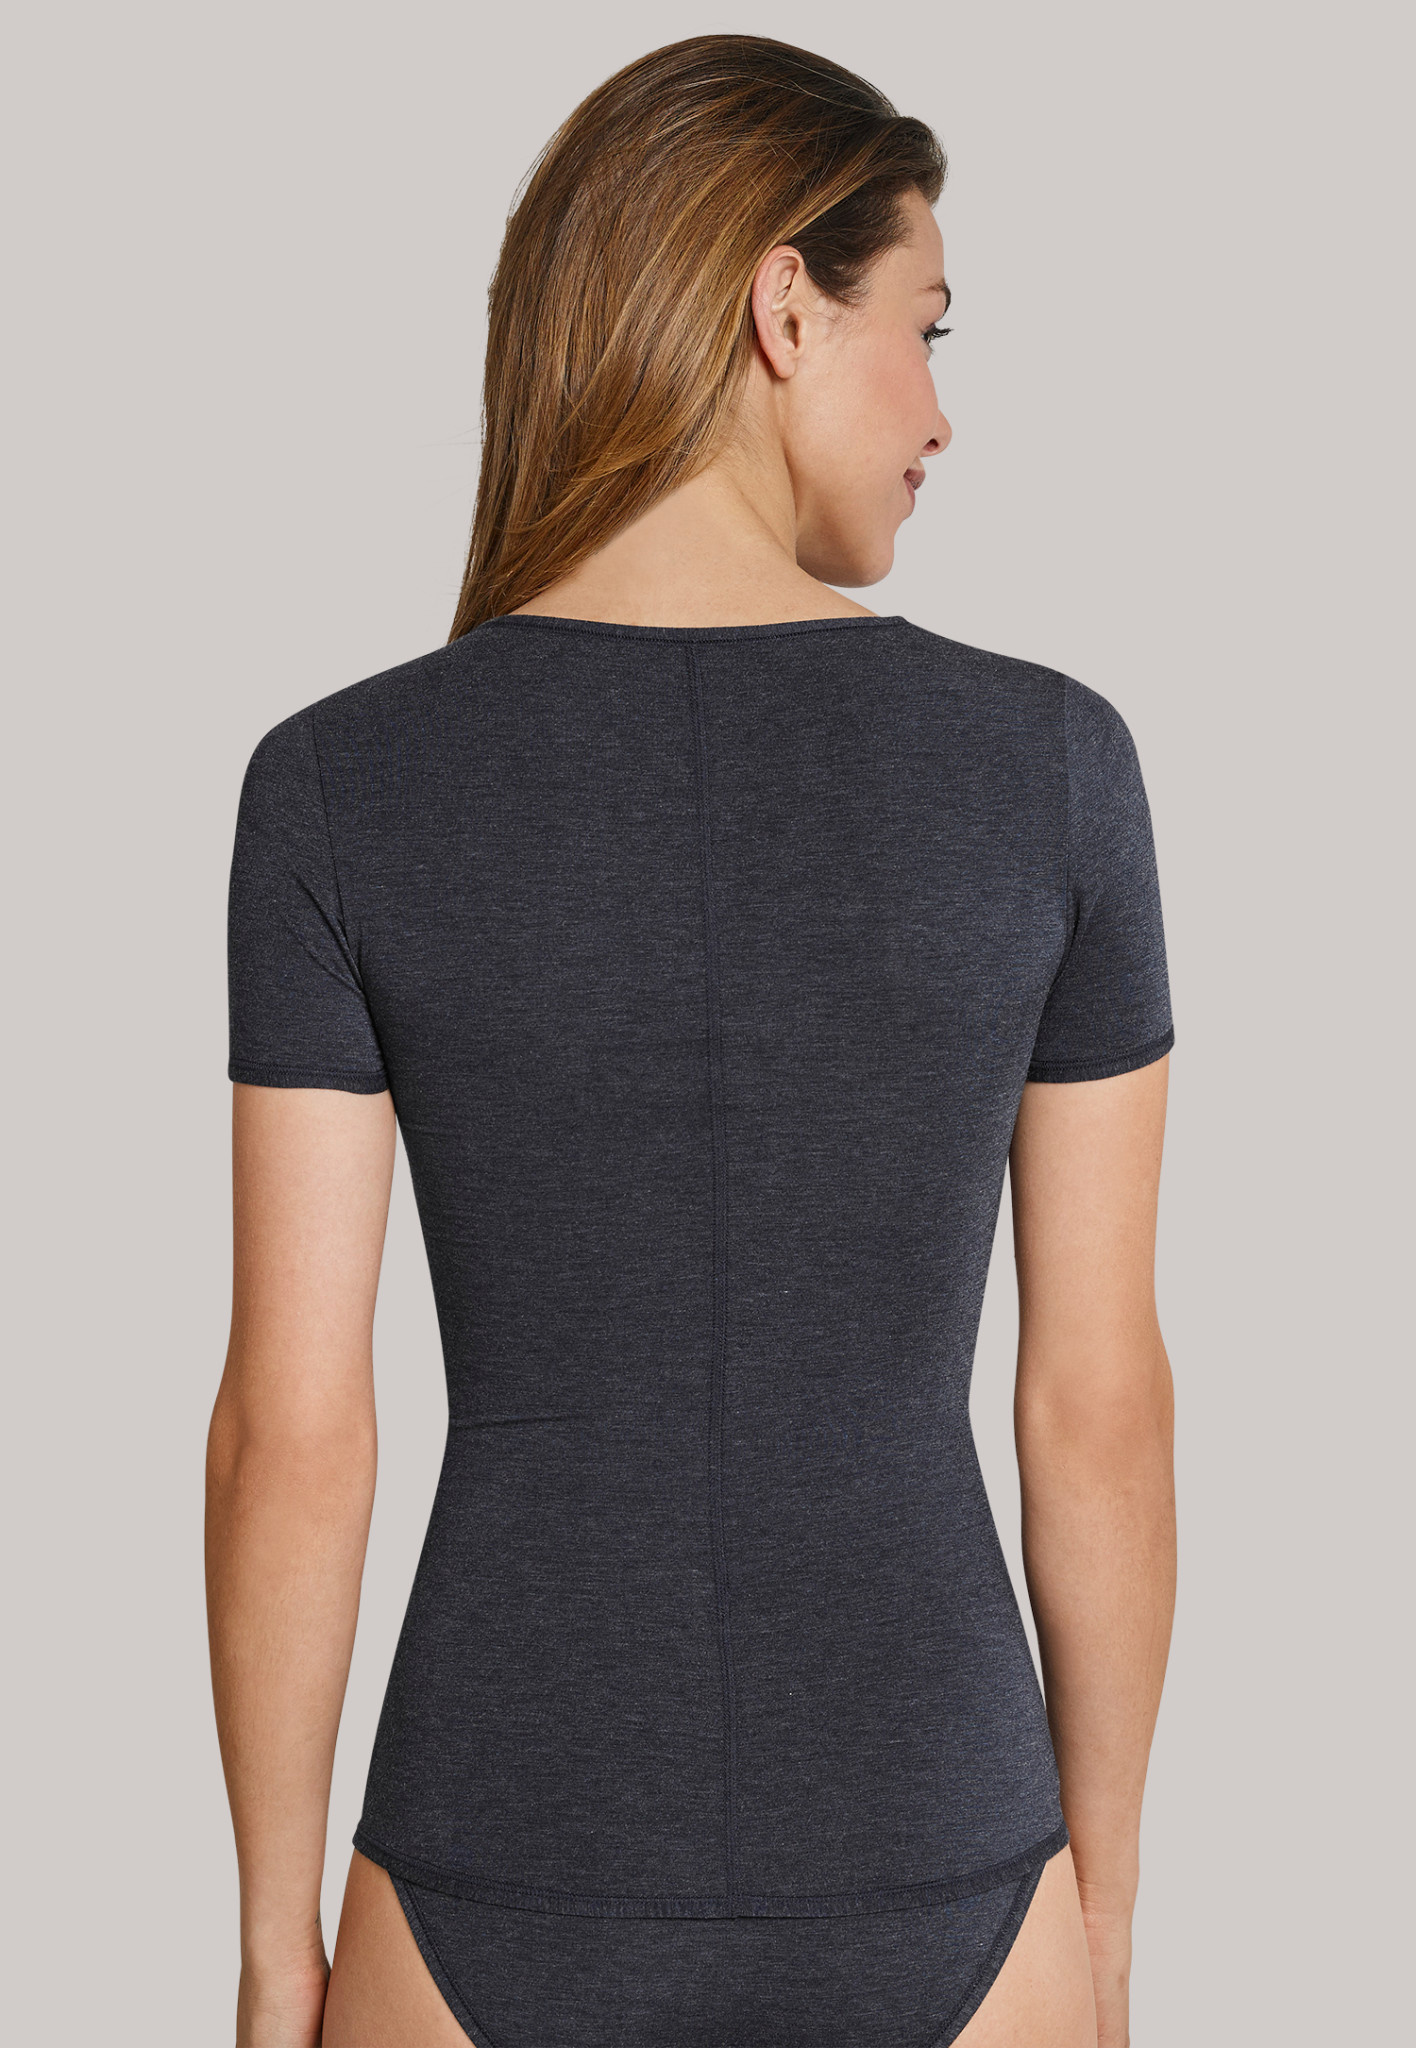 T-shirt Personal Fit 155413 - nachtblauw-2